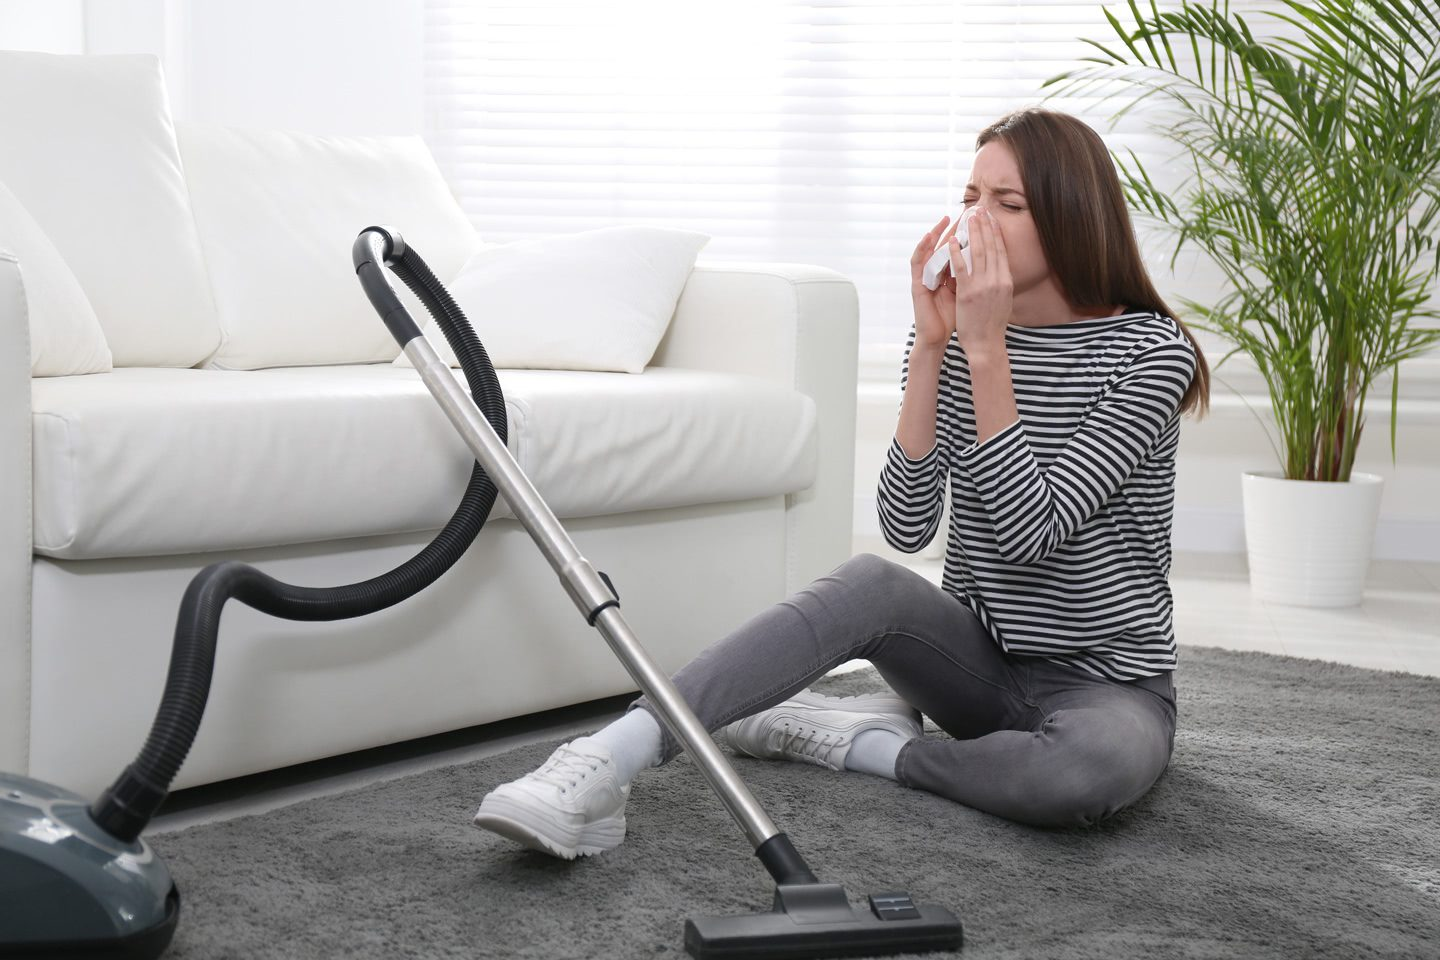 Mold and dust mites can live within your carpets. By cleaning them regularly you can reduce allergy attacks.